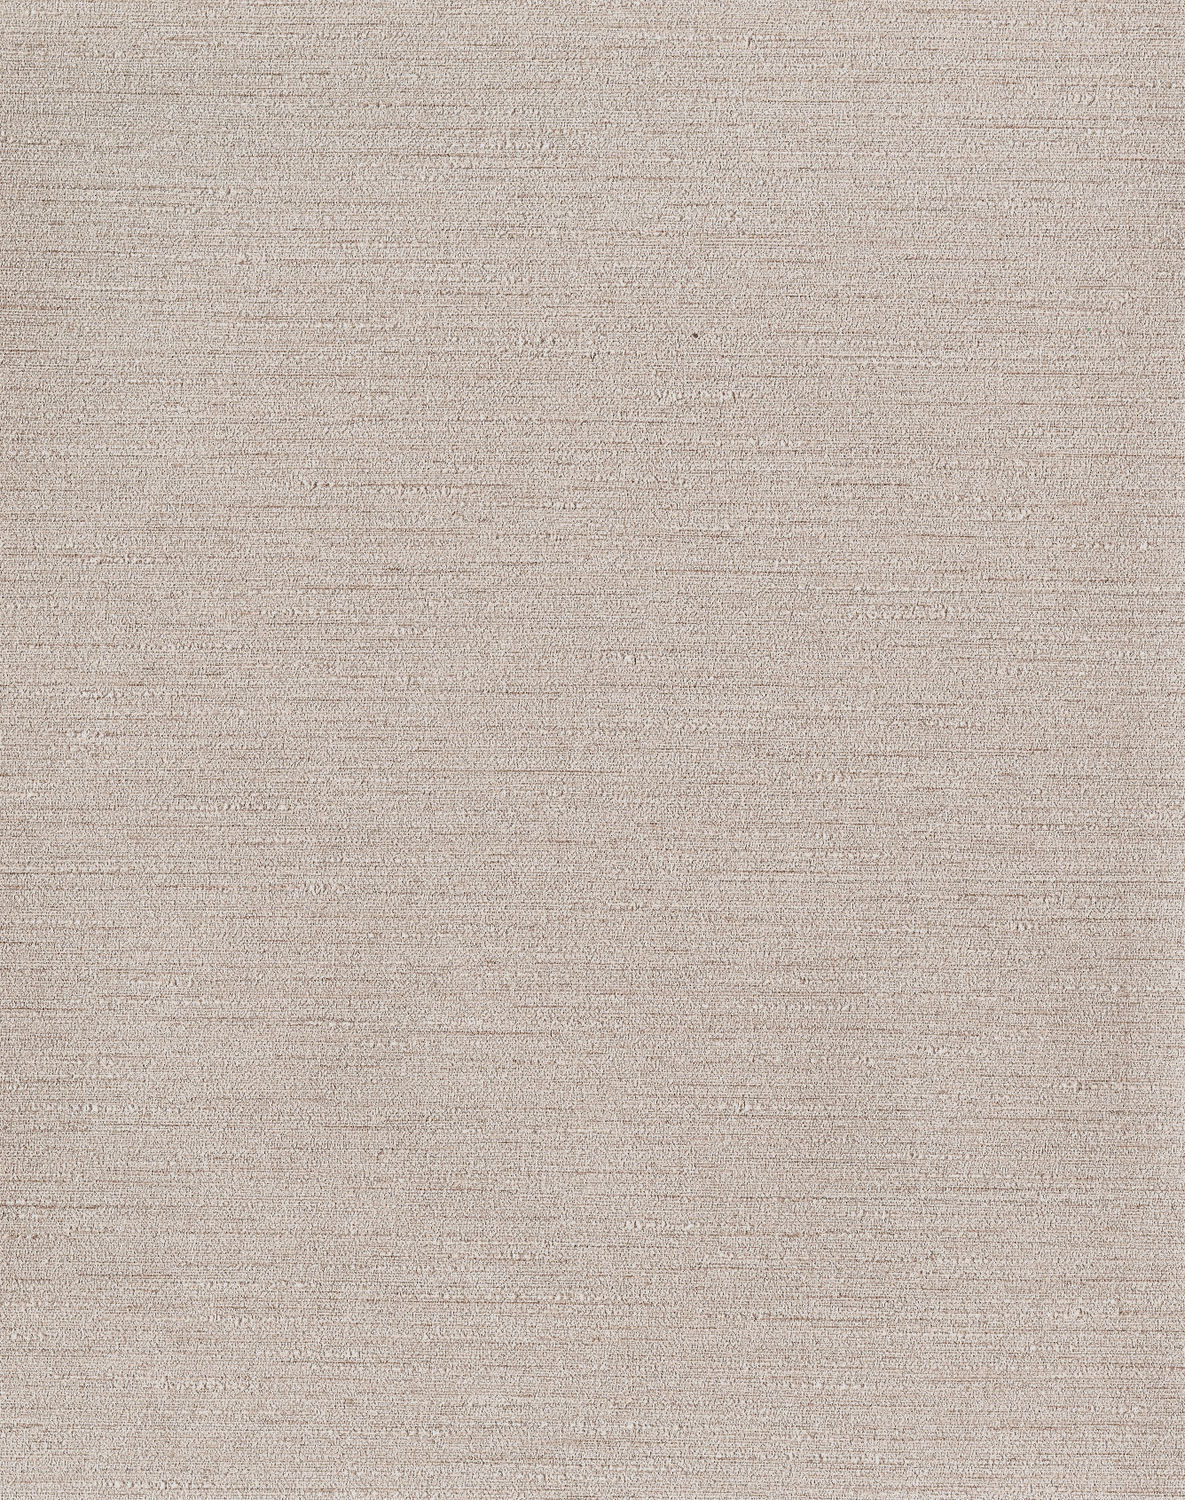 Modern Wallpaper Vinyl Plain Fabric Look